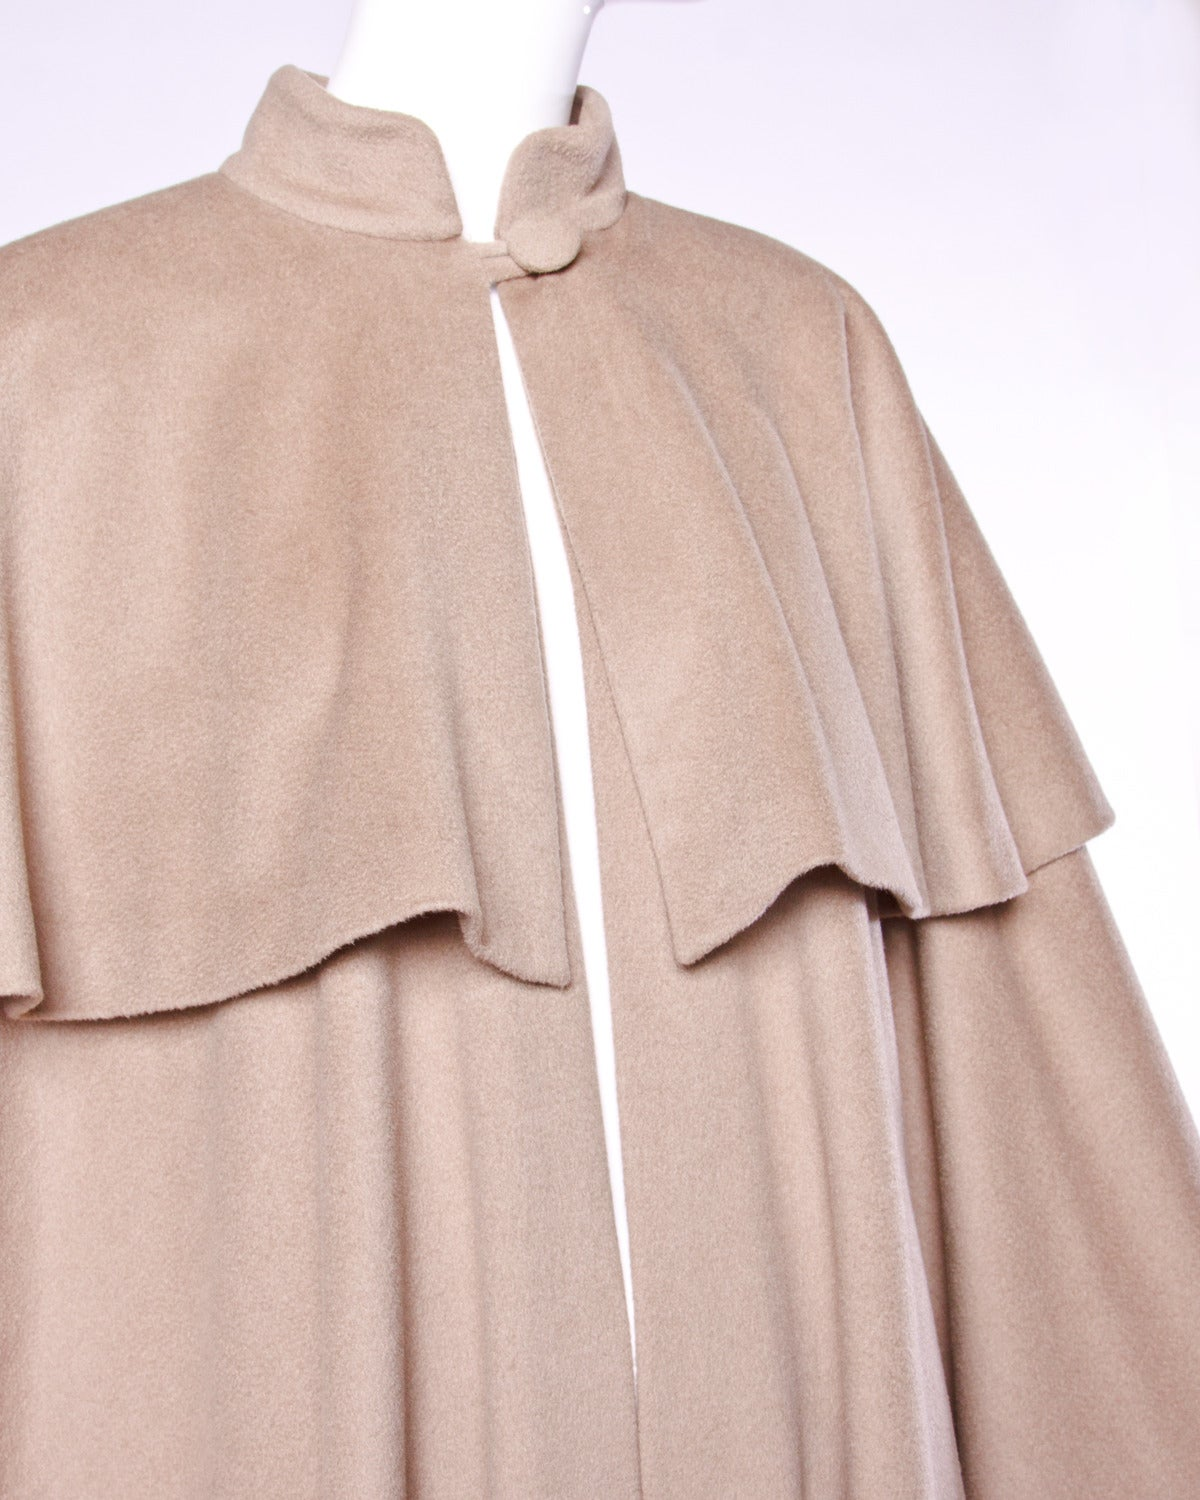 Moschino Couture! Vintage 1990s 90s Beige Wool Cape Coat 4